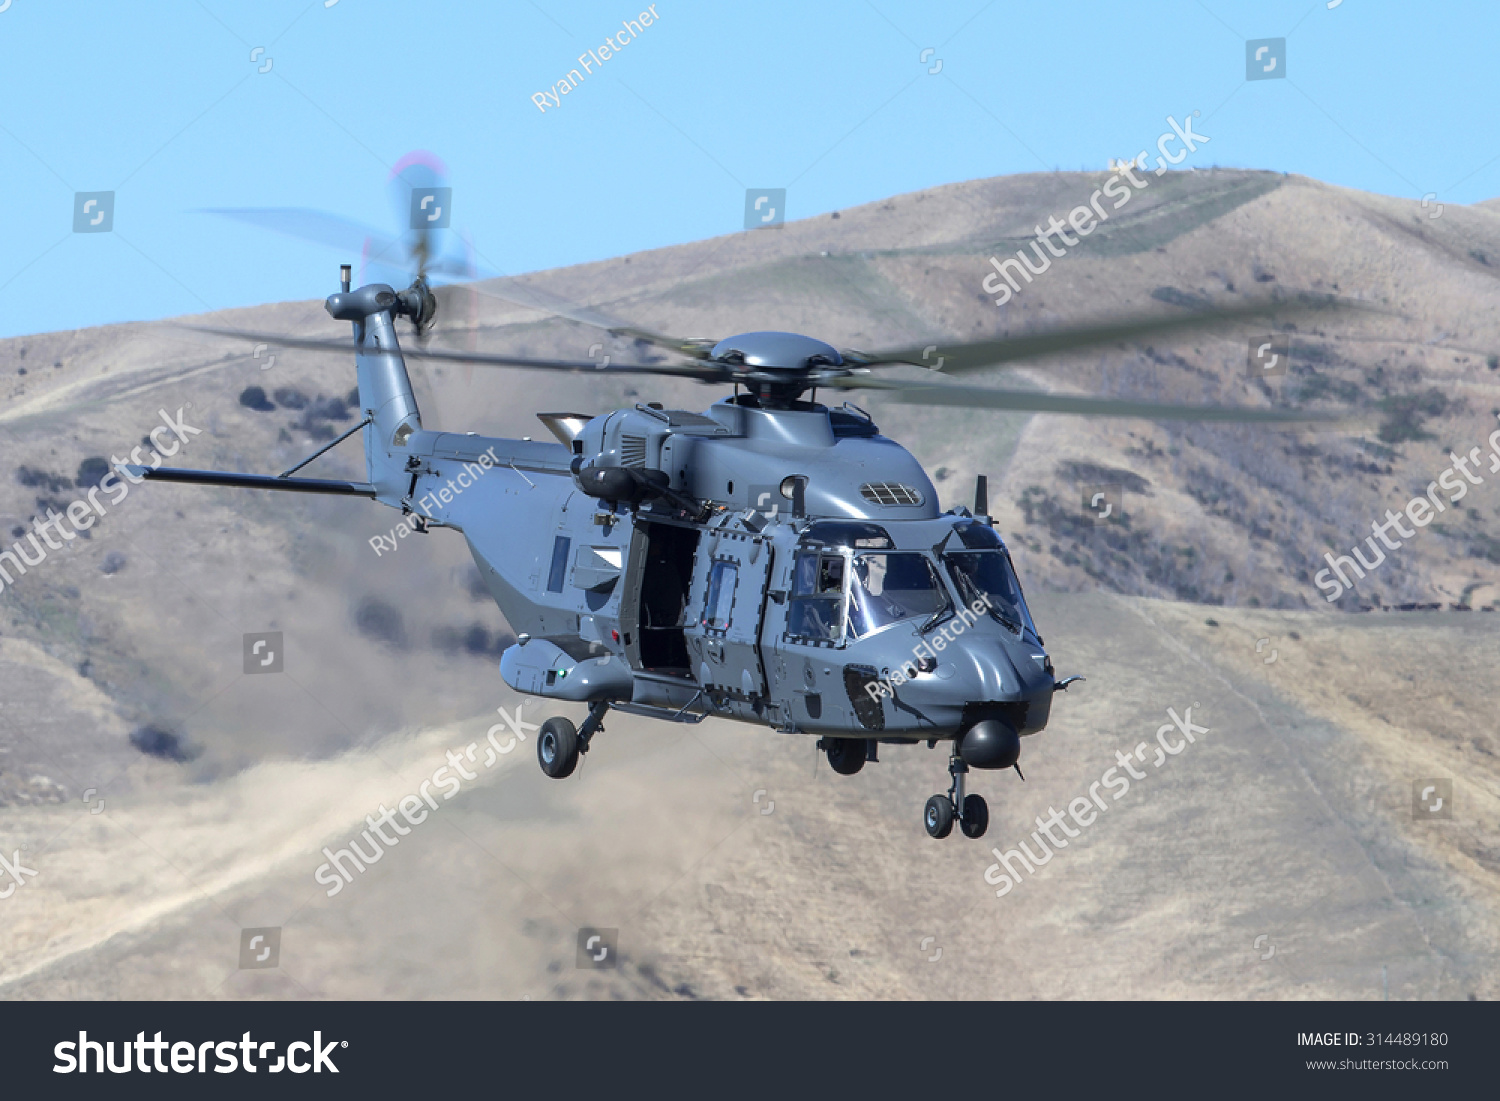 Military Cargo Helicopter Stock Photo 314489180 - Shutterstock